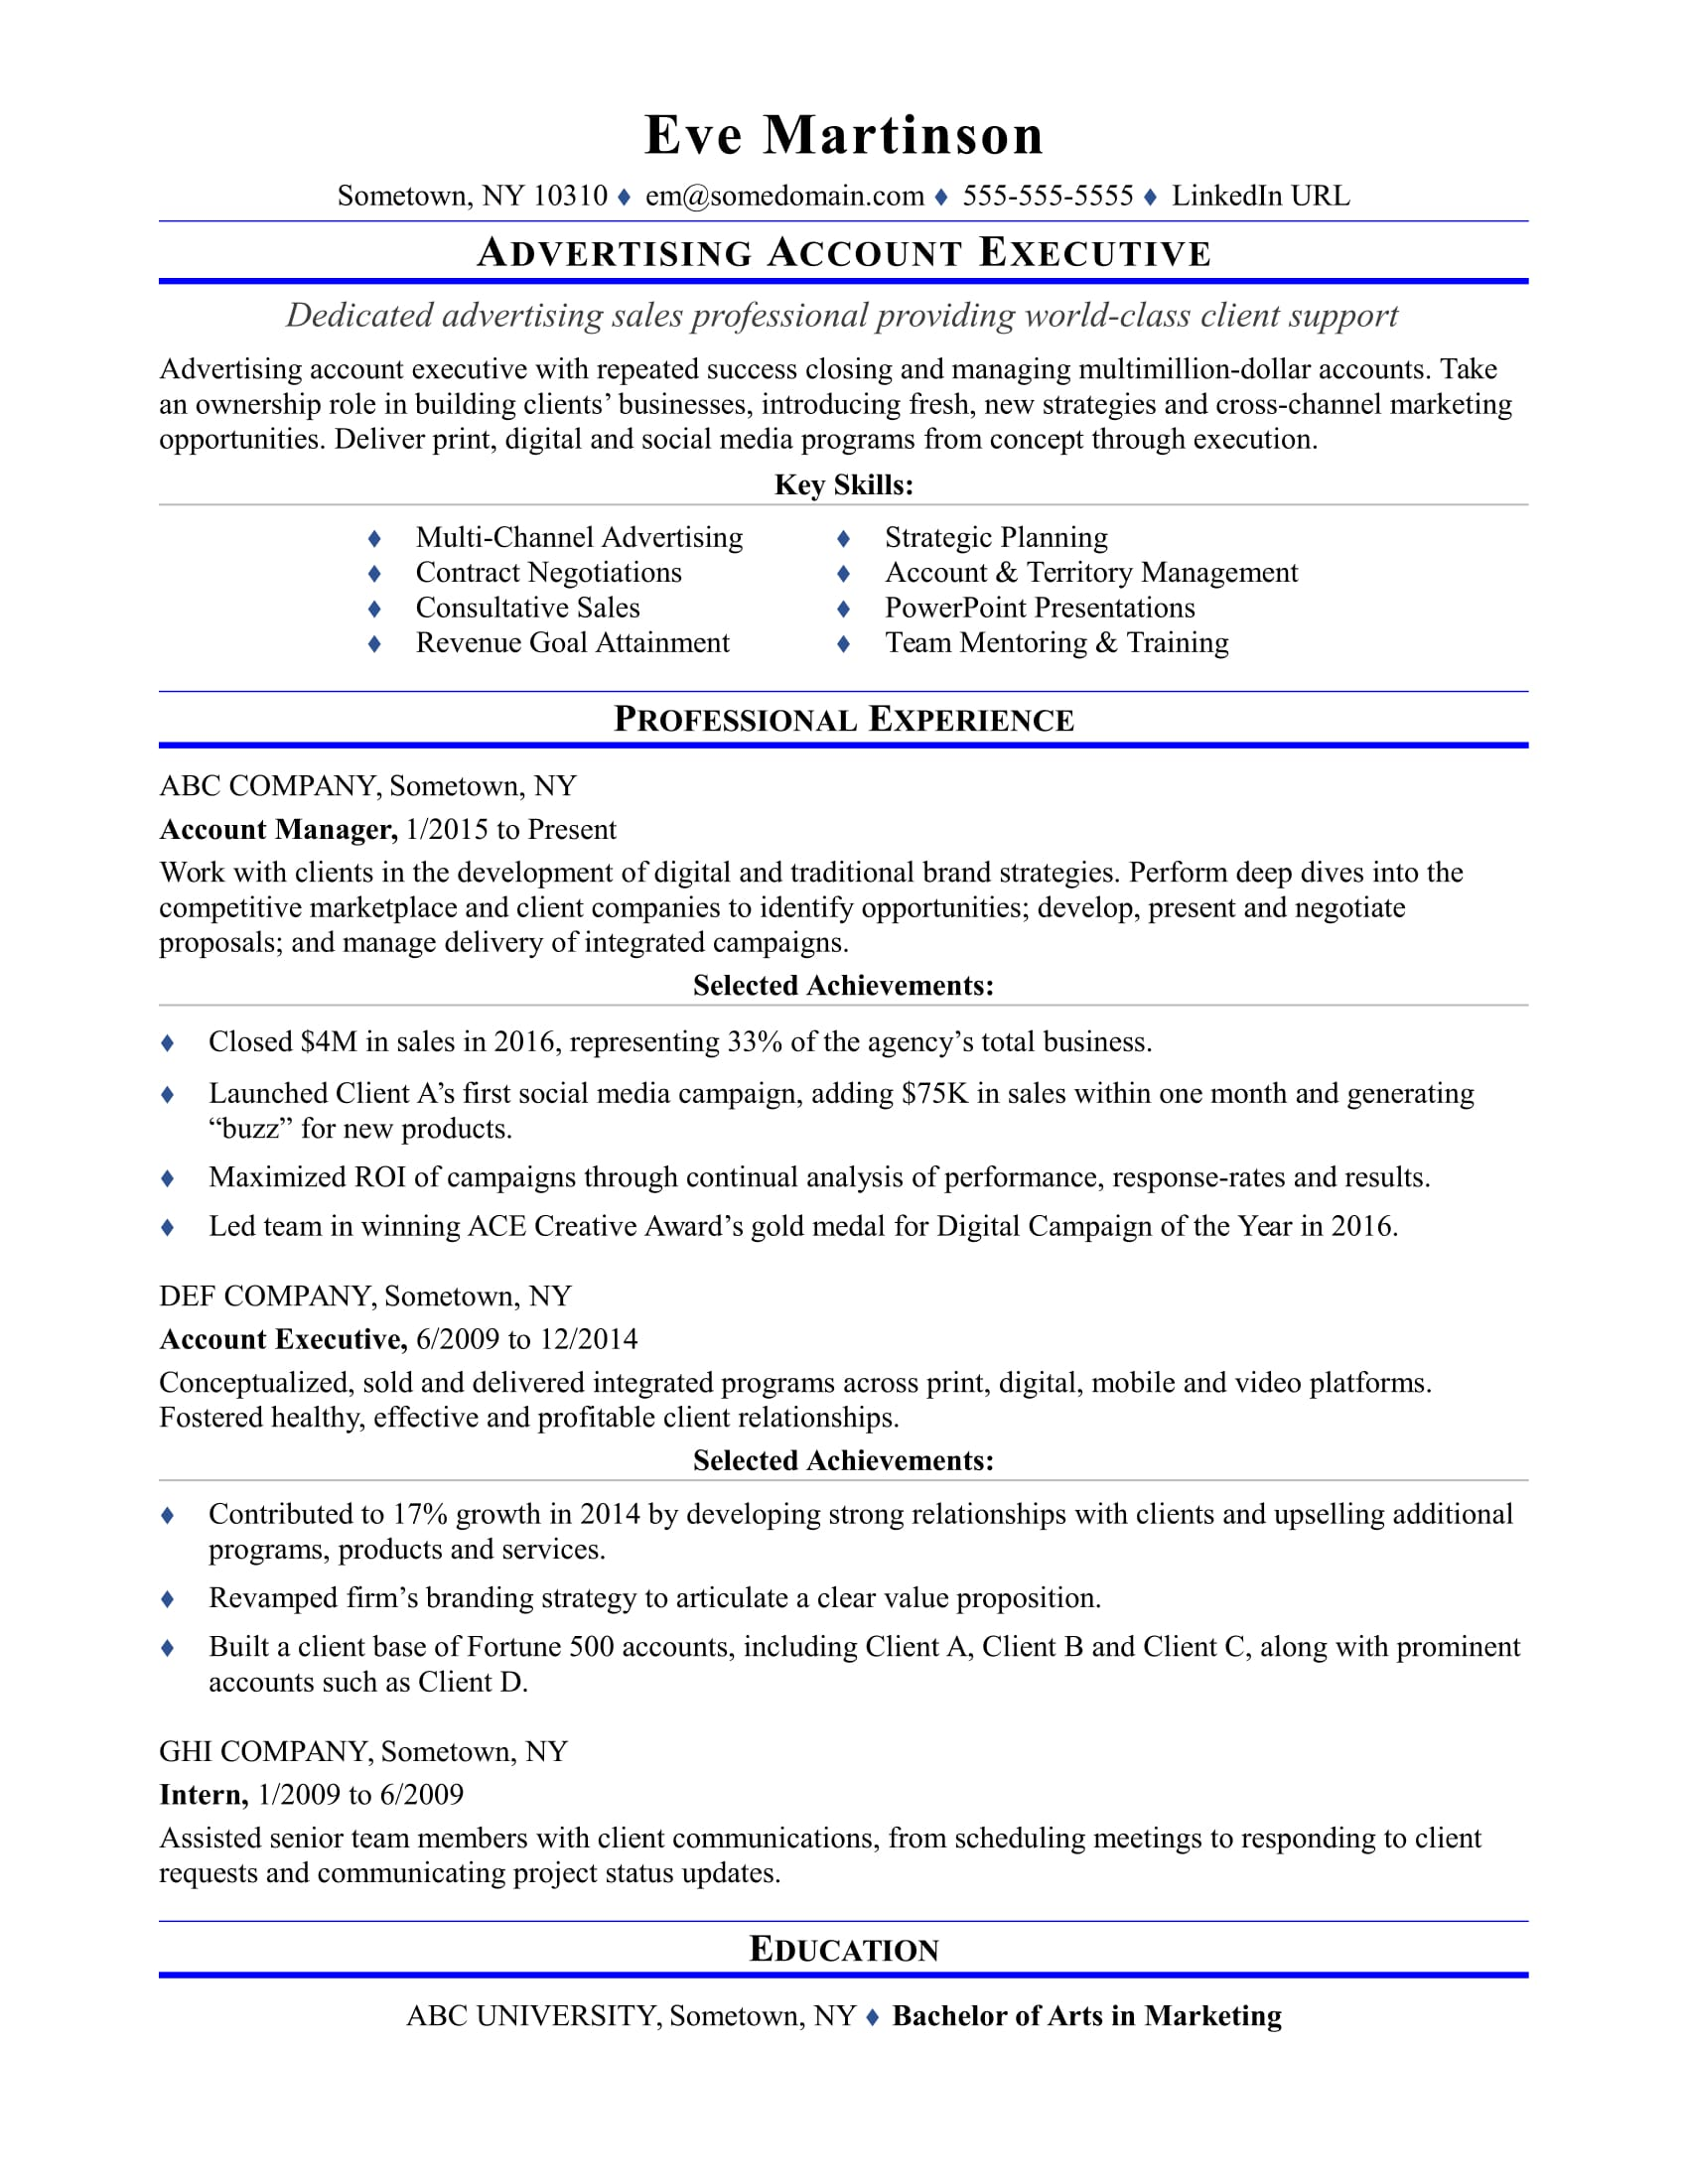 sample resume for an advertising account executive monster professional logistics Resume Professional Account Executive Resume